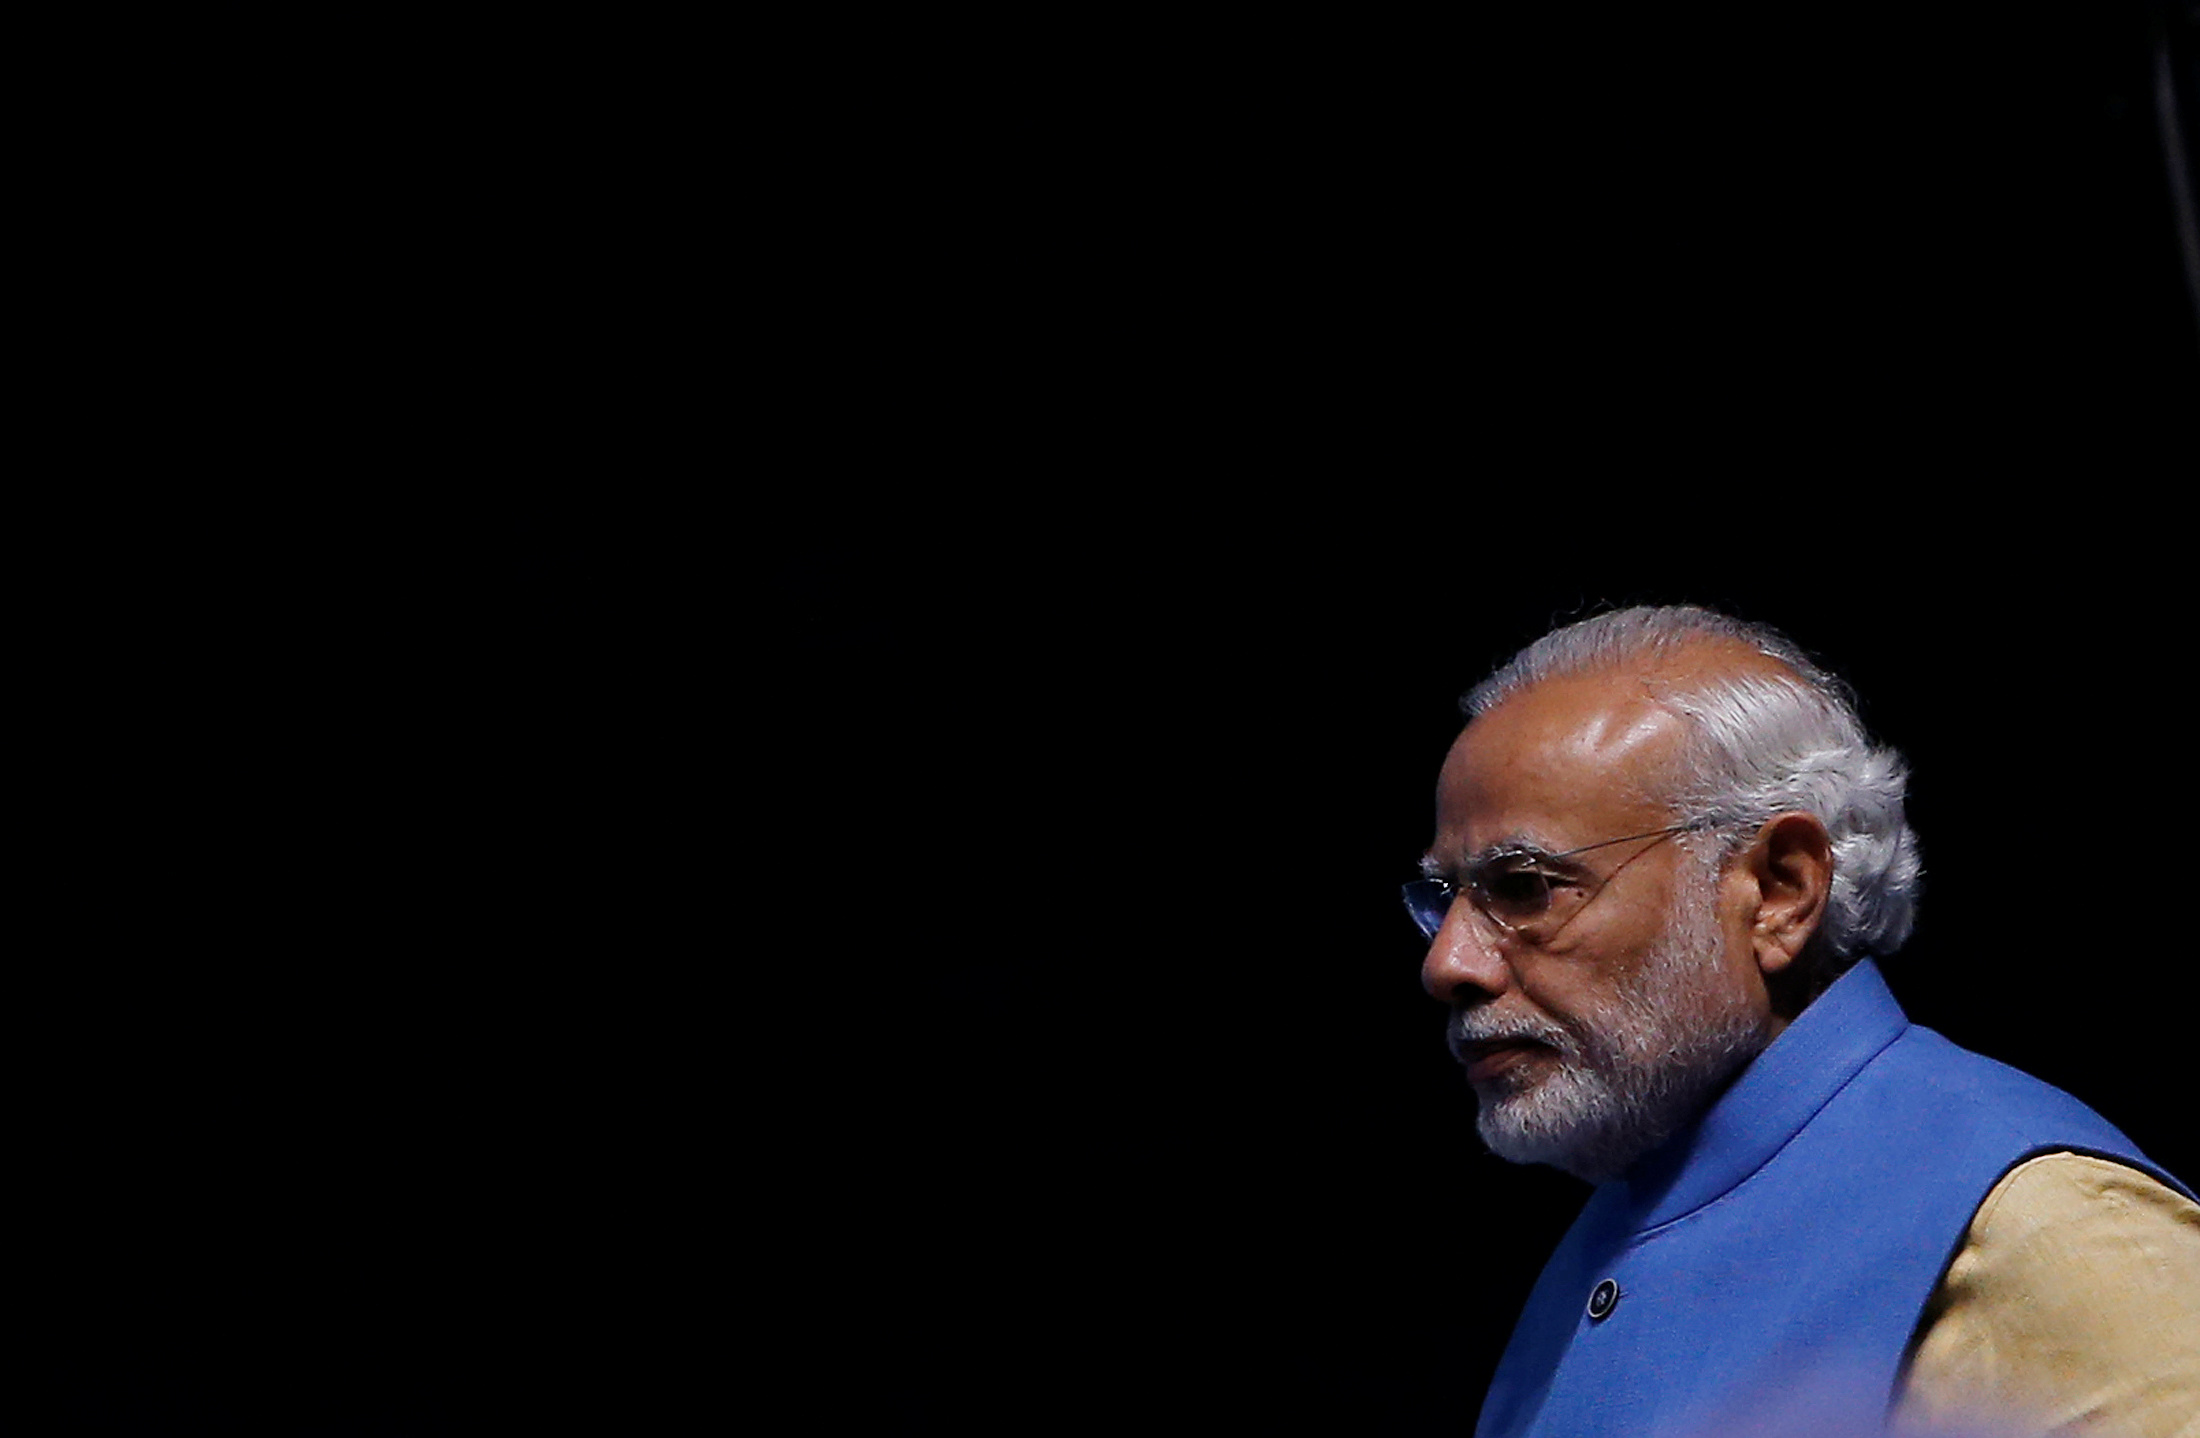 """India's Prime Minister Narendra Modi arrives to launch a digital payment app linked with a nationwide biometric database during the """"DigiDhan"""" fair, in New Delhi, India, December 30, 2016. REUTERS/Adnan Abidi"""